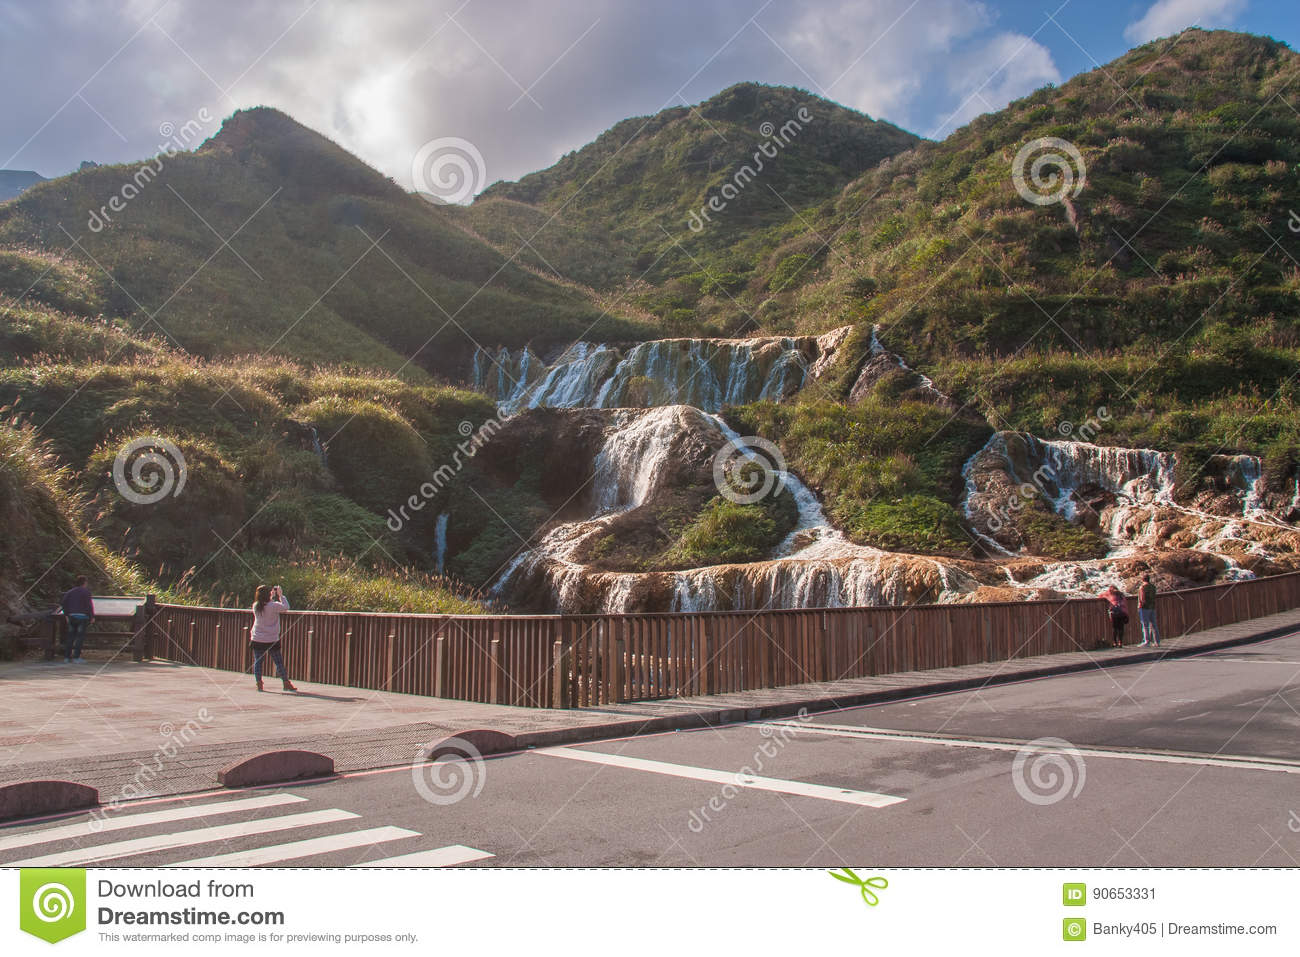 Golden Waterfall is one of the most beautiful waterfall in Taiwan